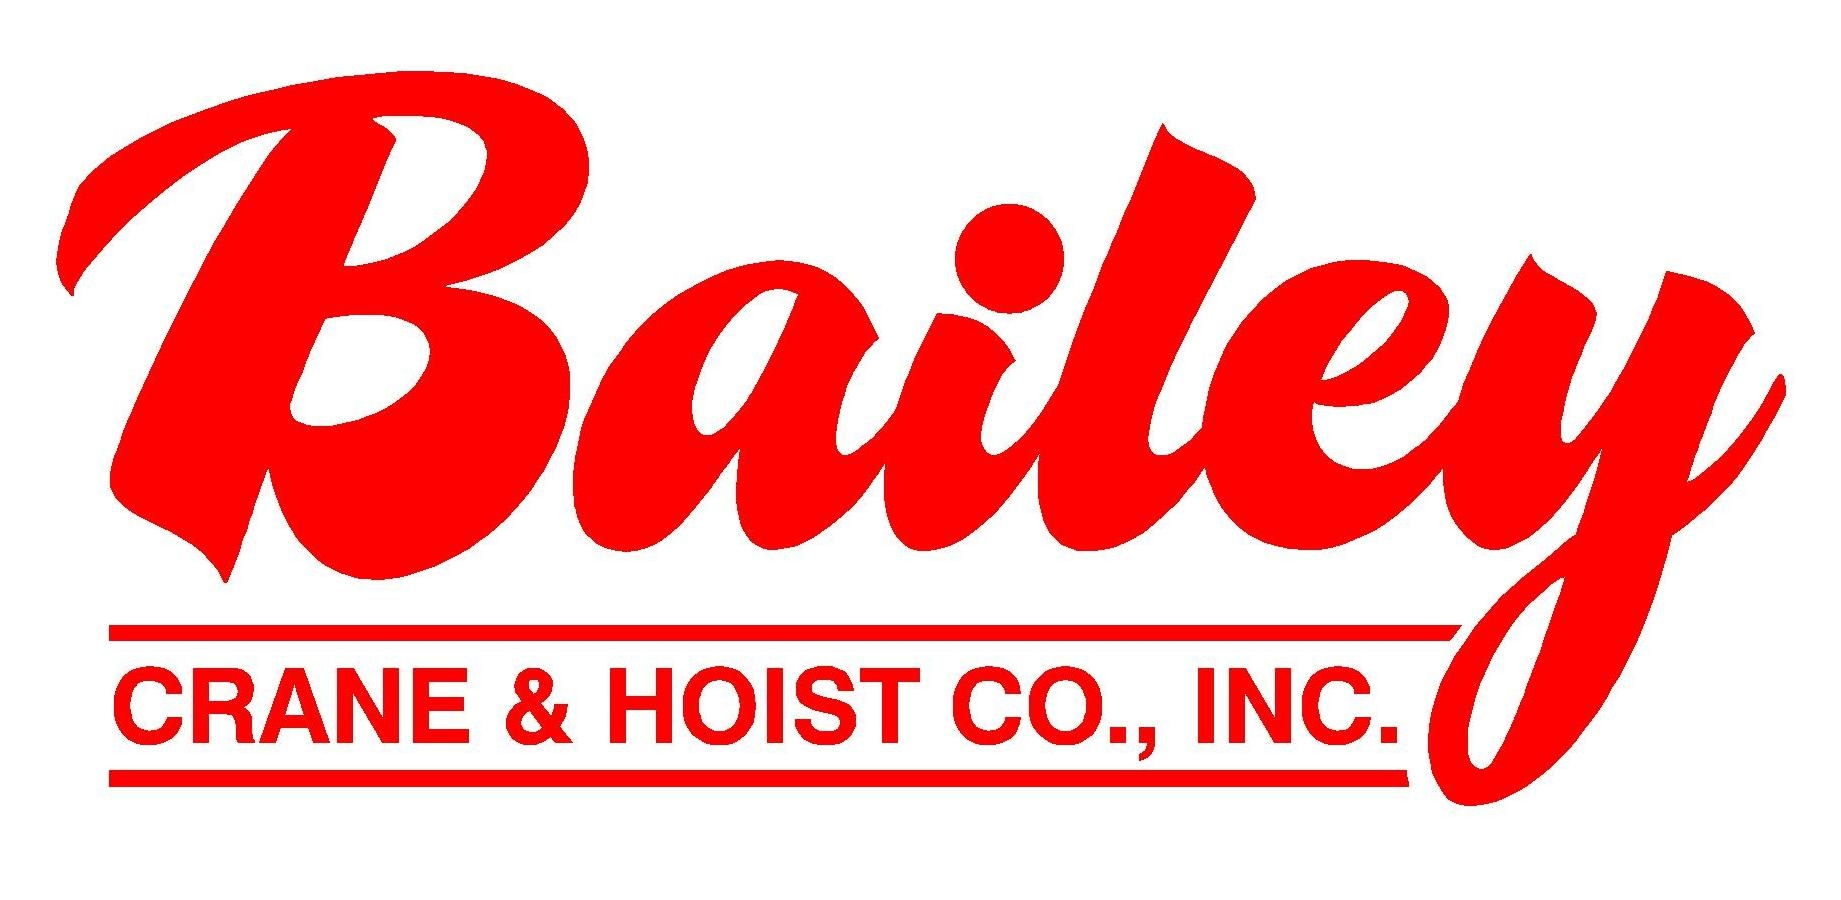 Bailey Crane and Hoist Co., Inc. Photo